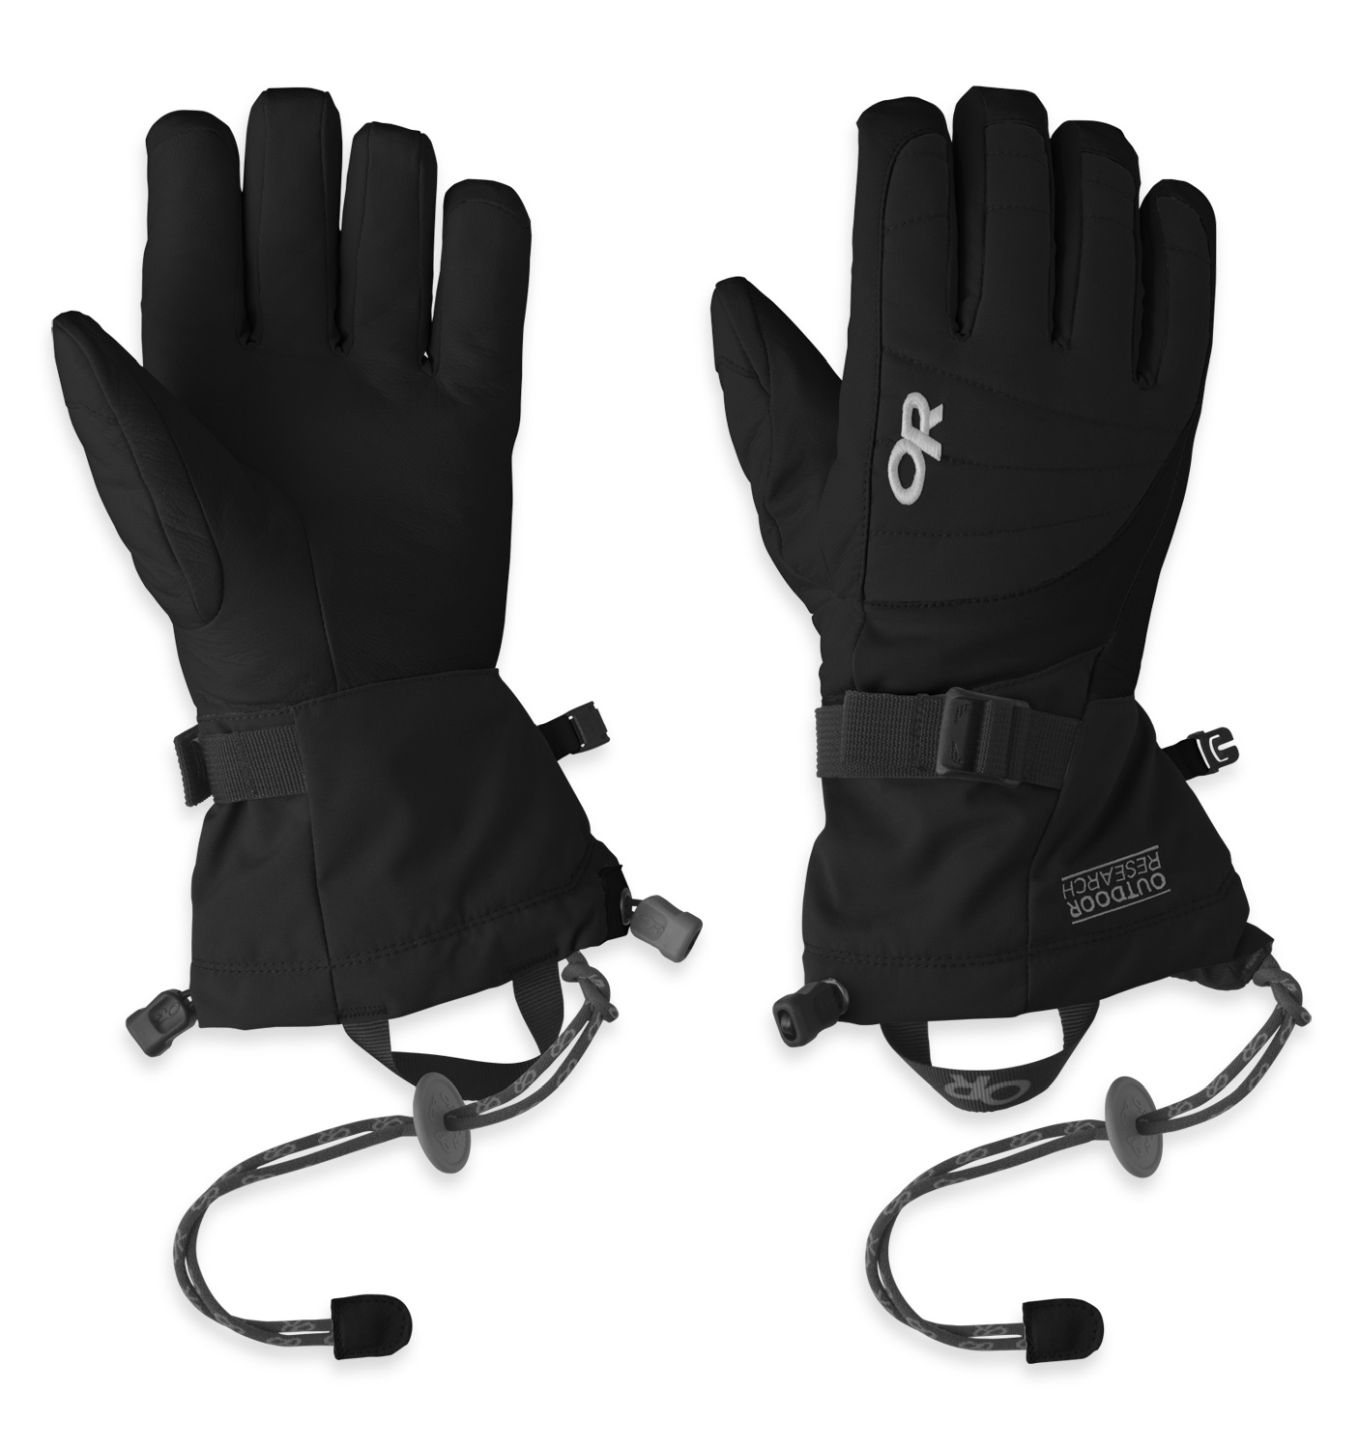 Outdoor Research Women's Revolution Gloves black-30